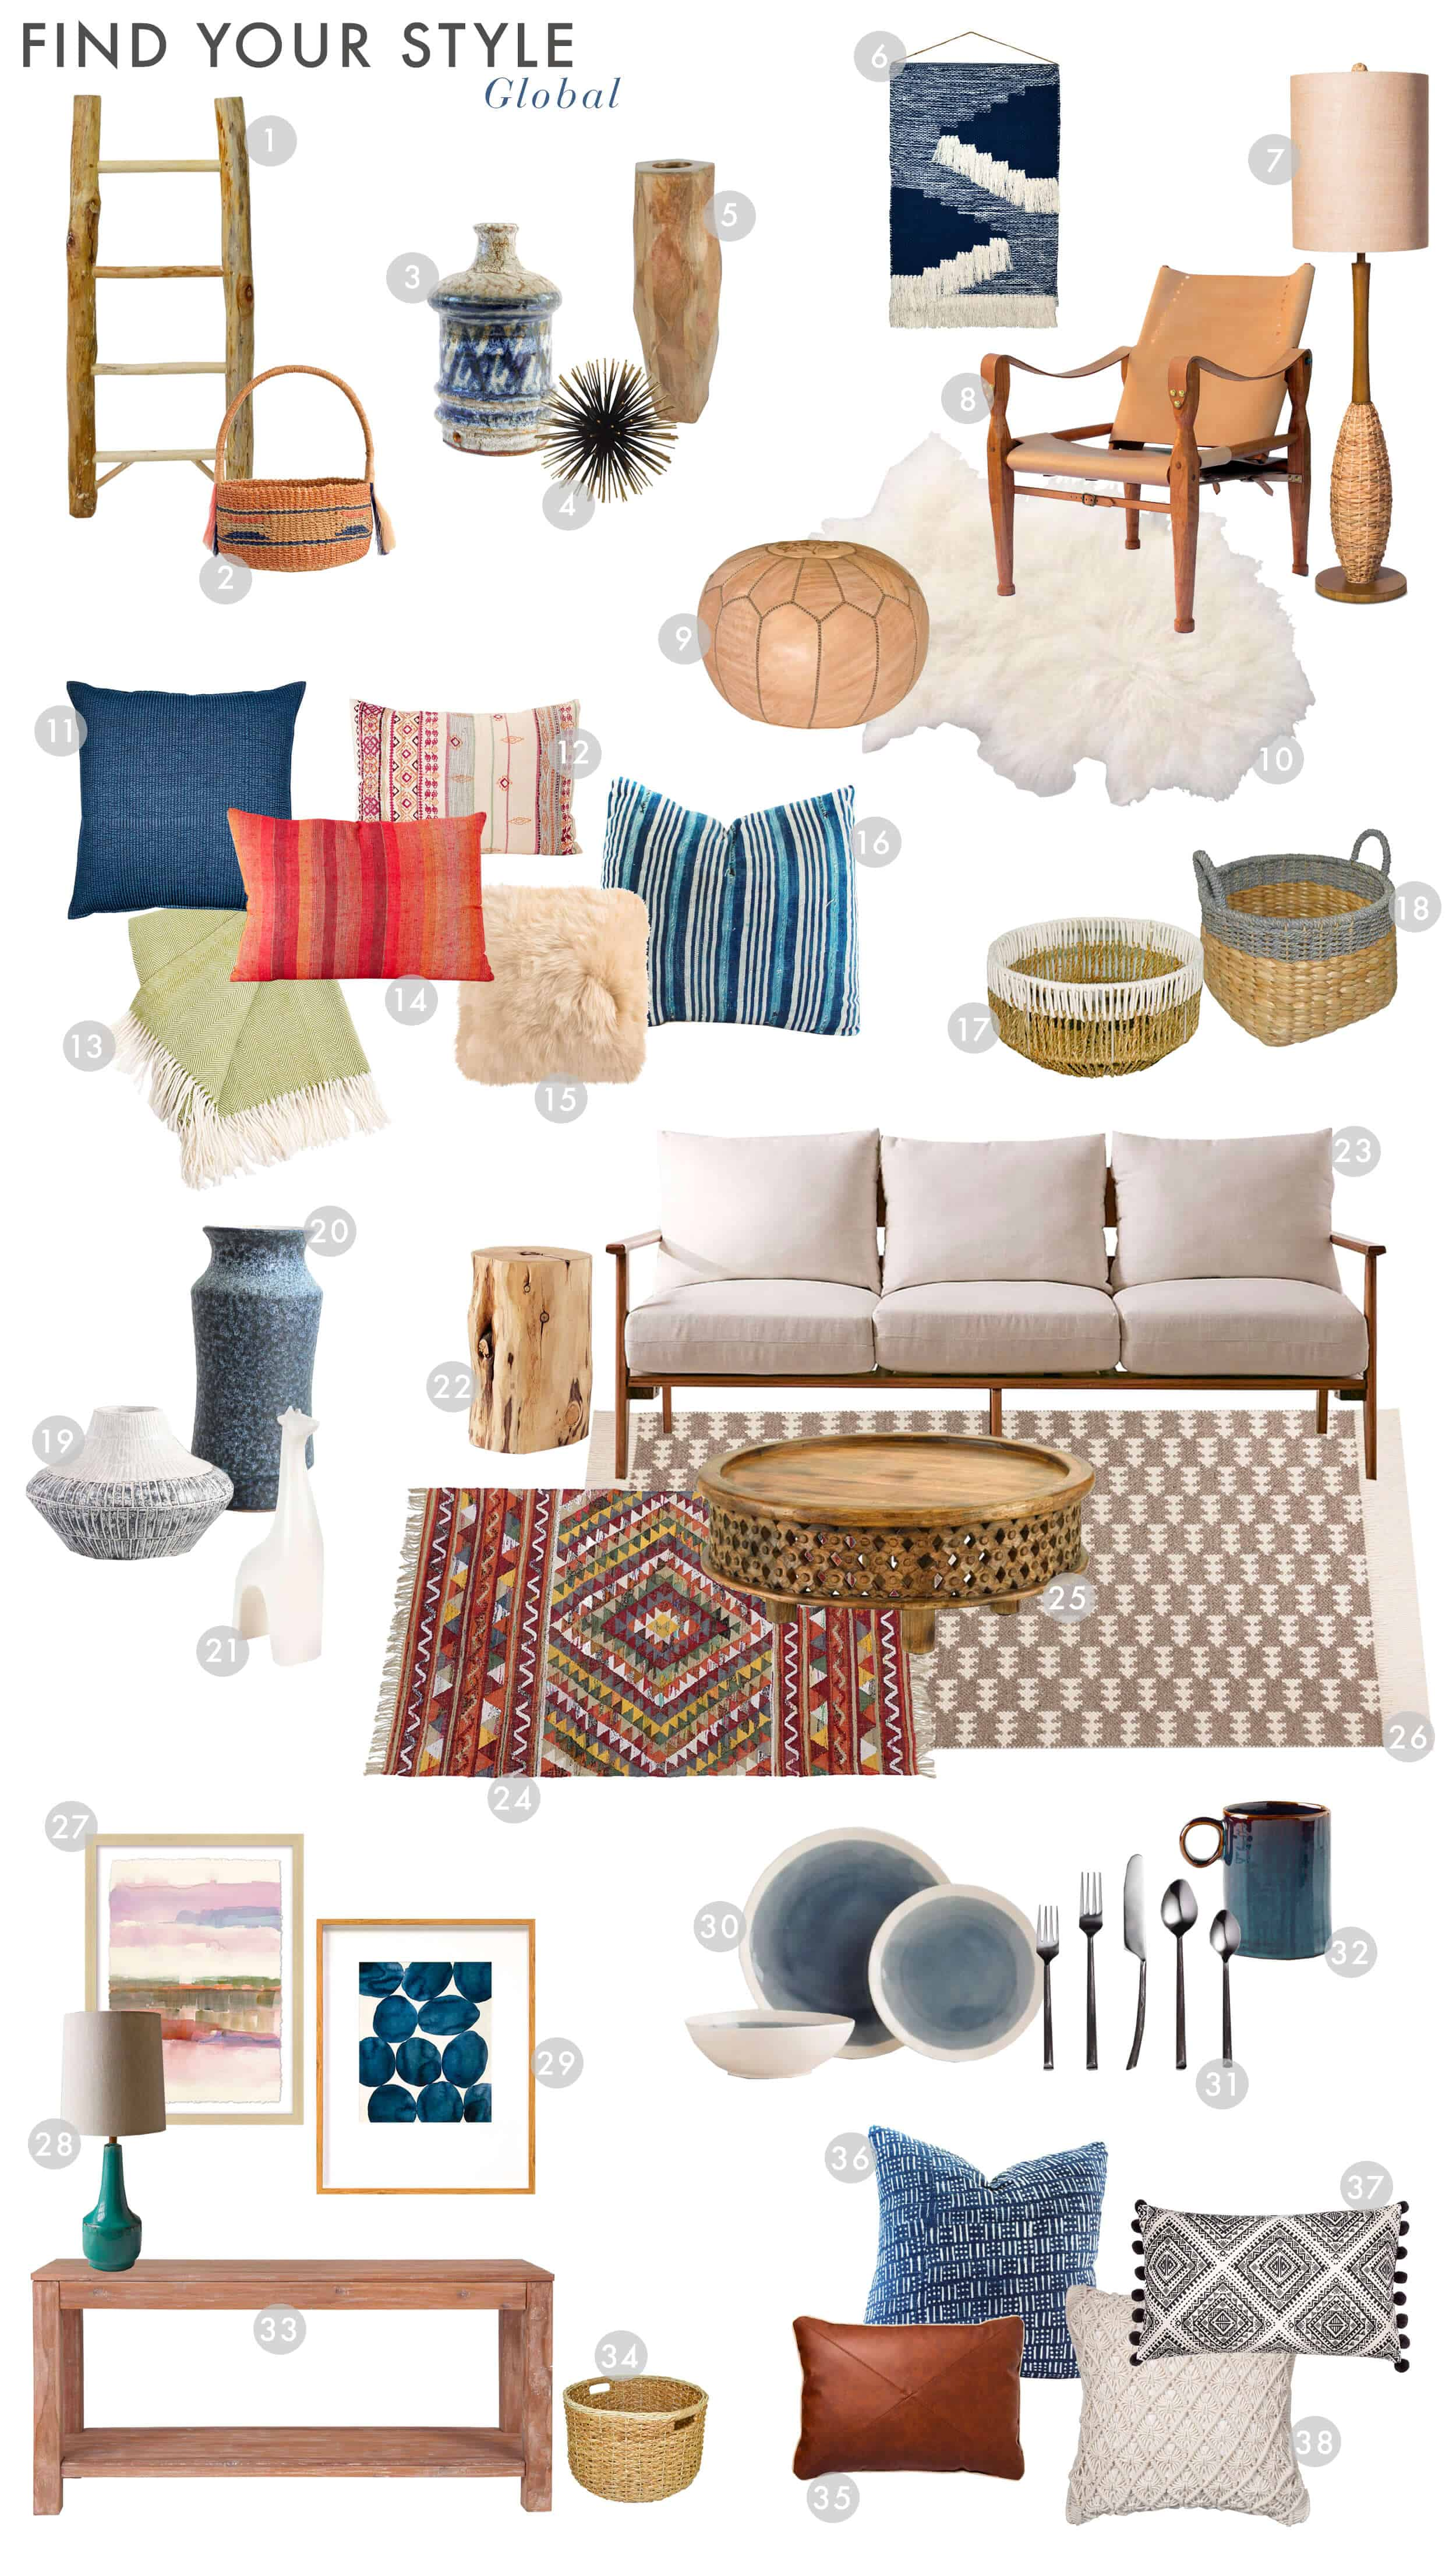 Emily Henderson_Find Your Style_Style Quiz_Vignettes_Bohemian_Global_Get the Look